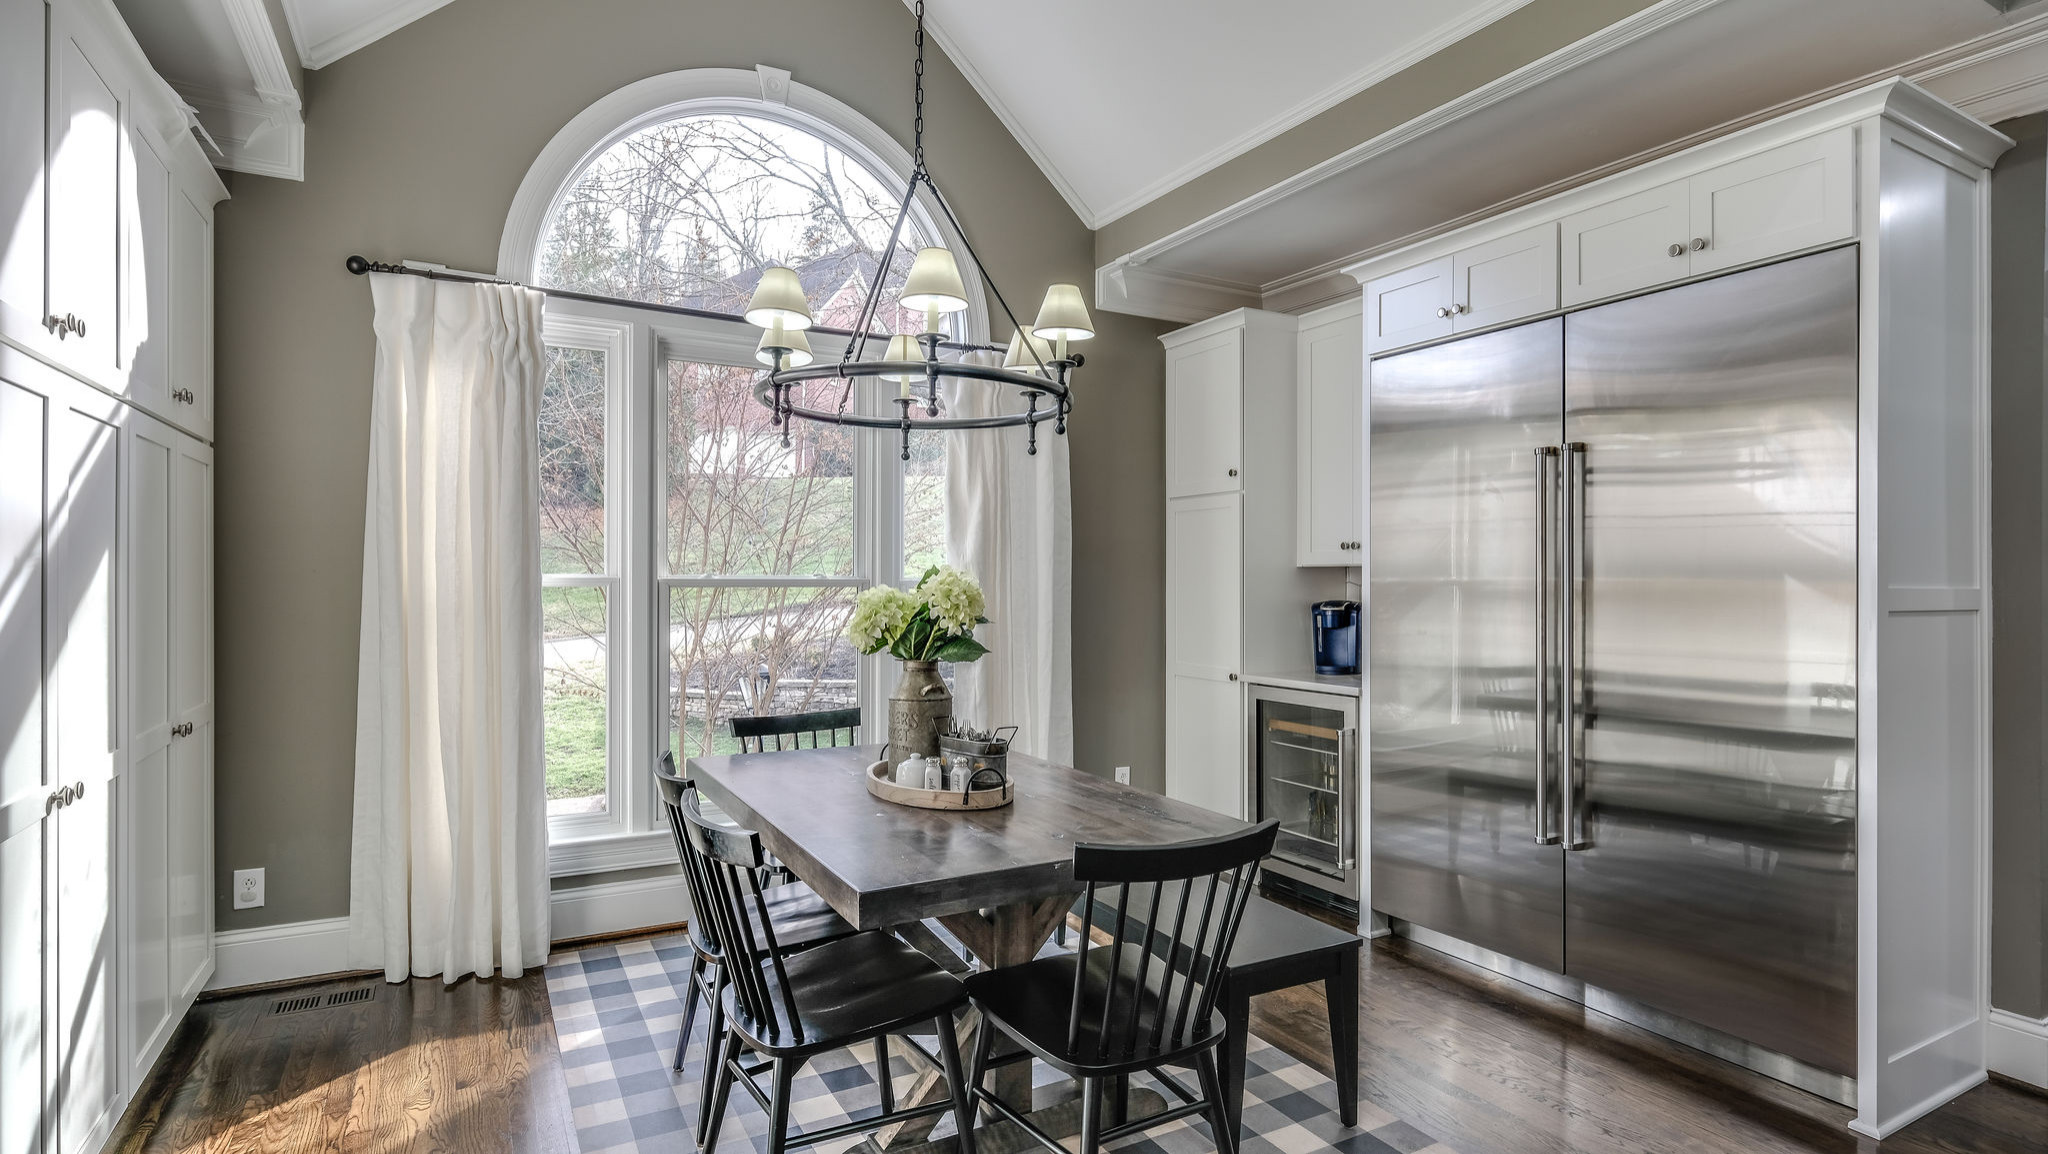 75 Beautiful Dining Room With Gray Walls Pictures Ideas December 2020 Houzz